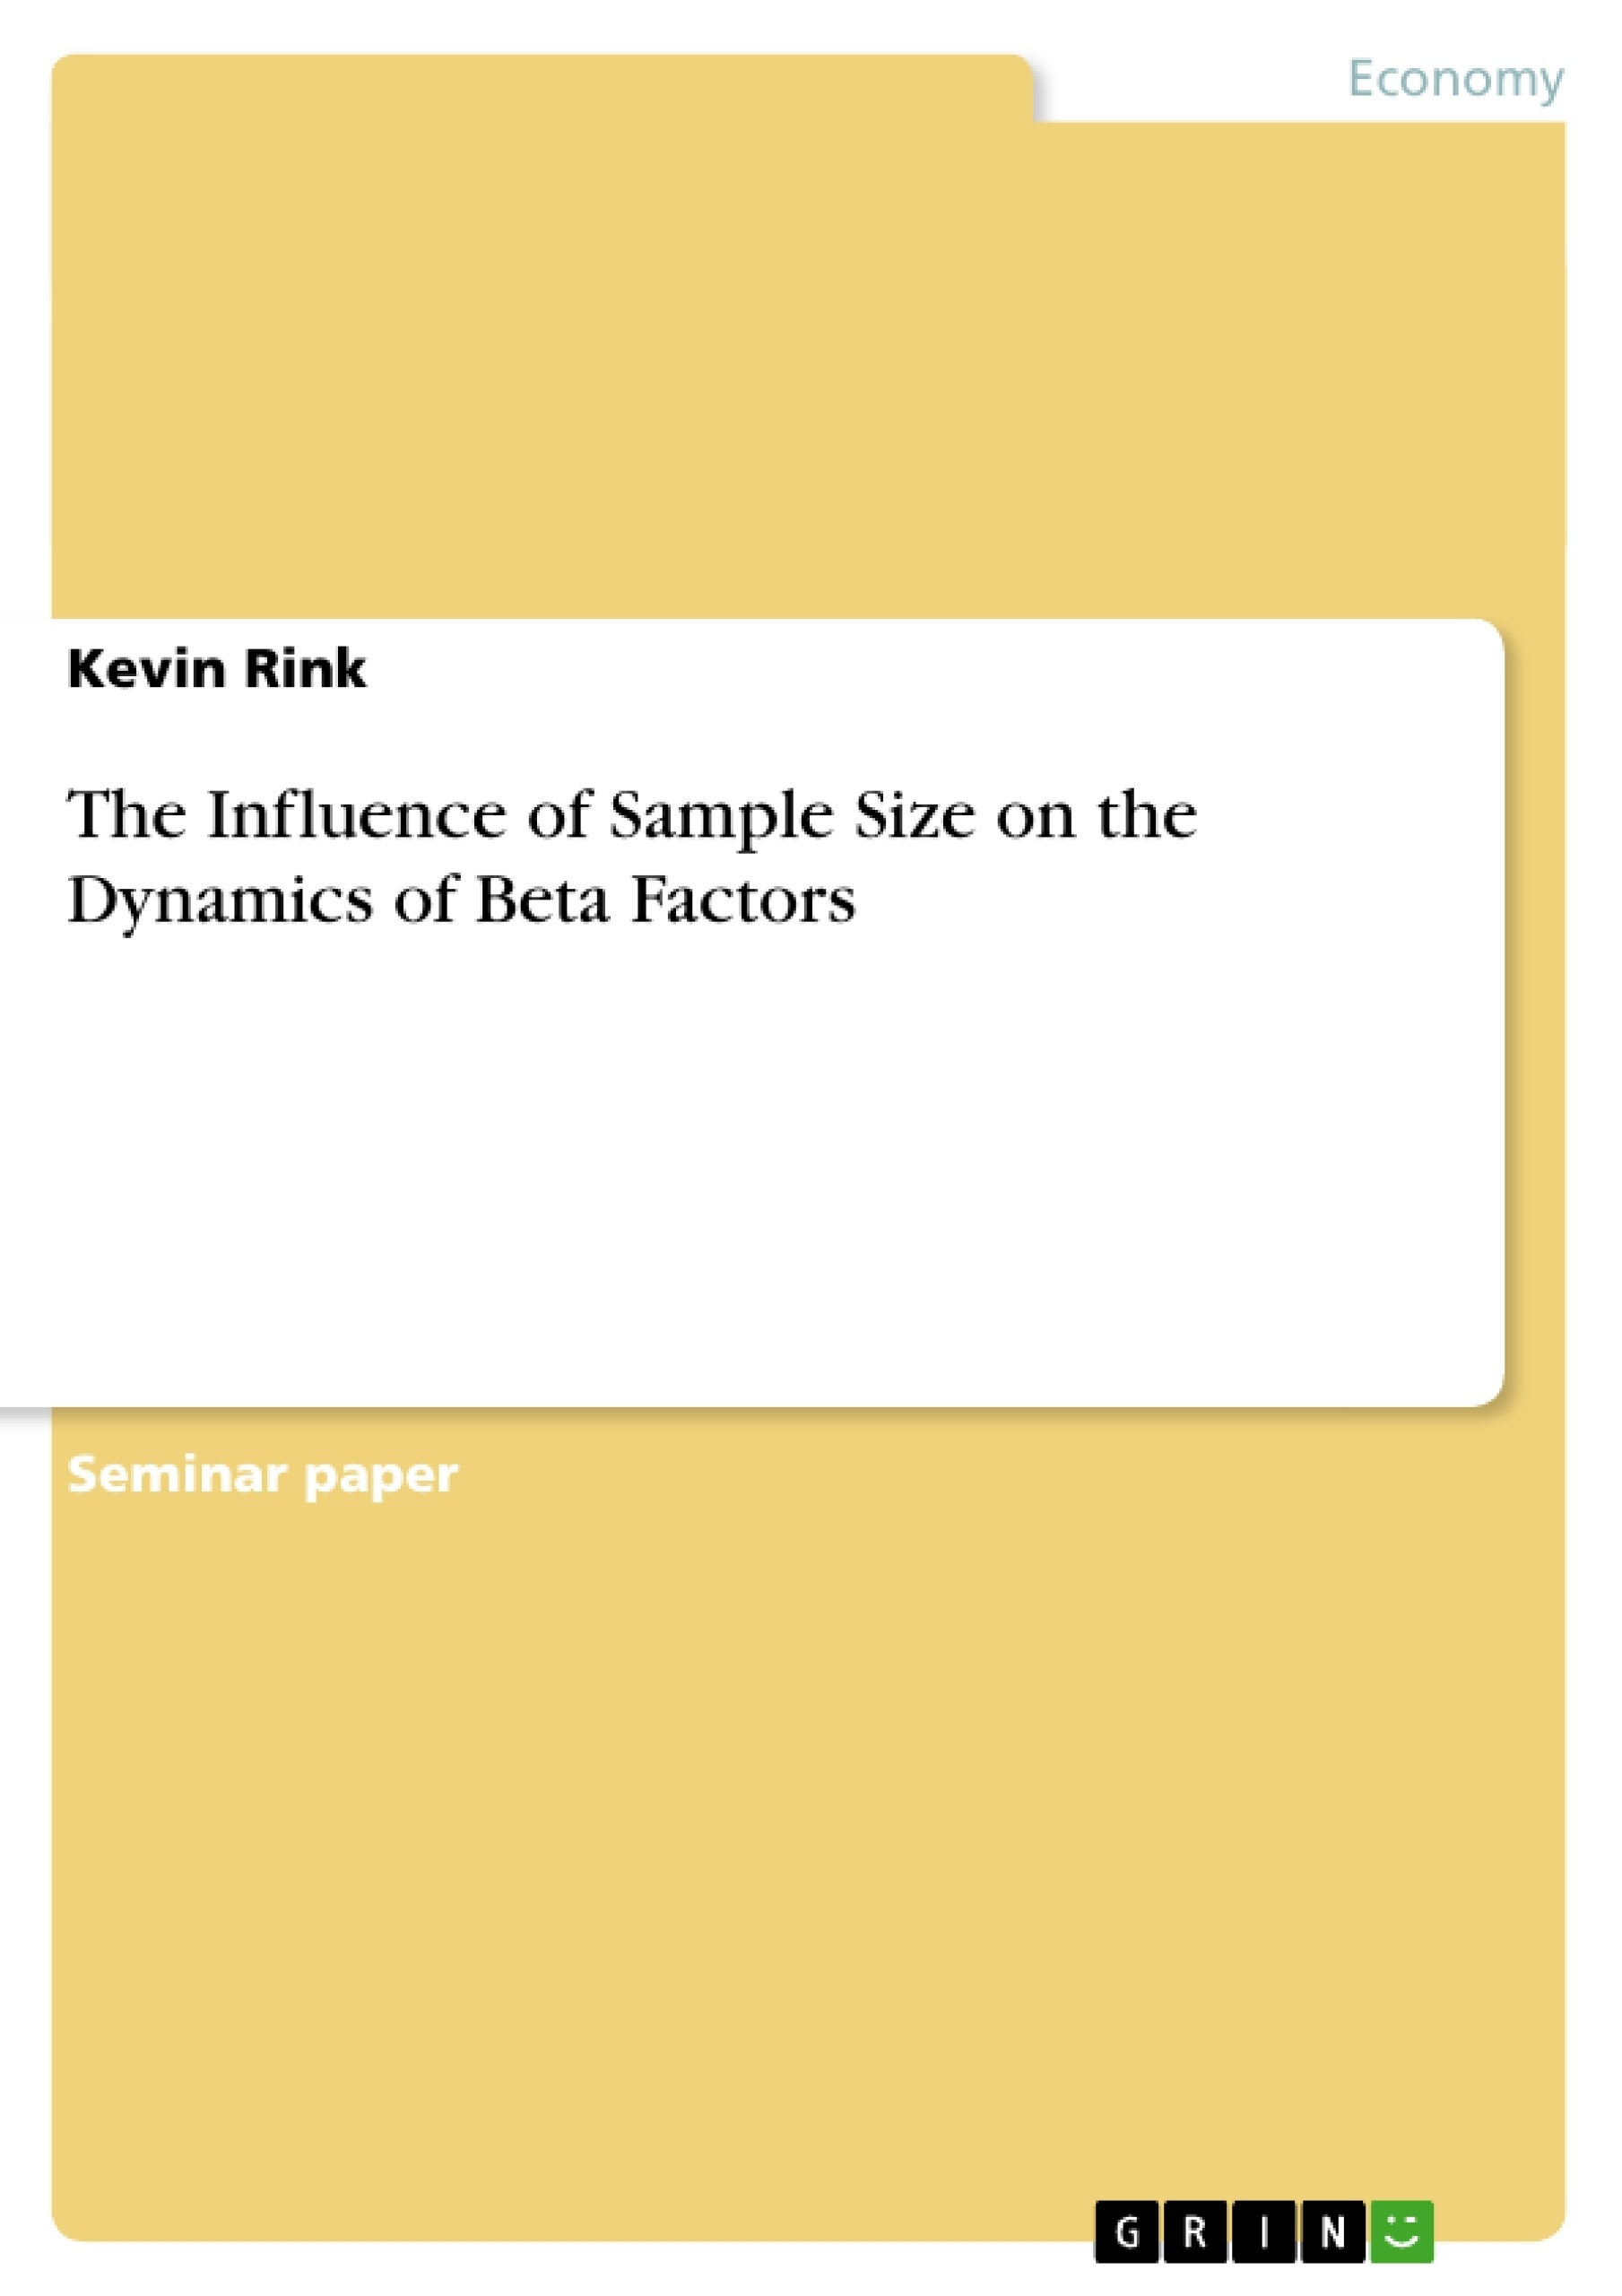 Title: The Influence of Sample Size on the Dynamics of Beta Factors